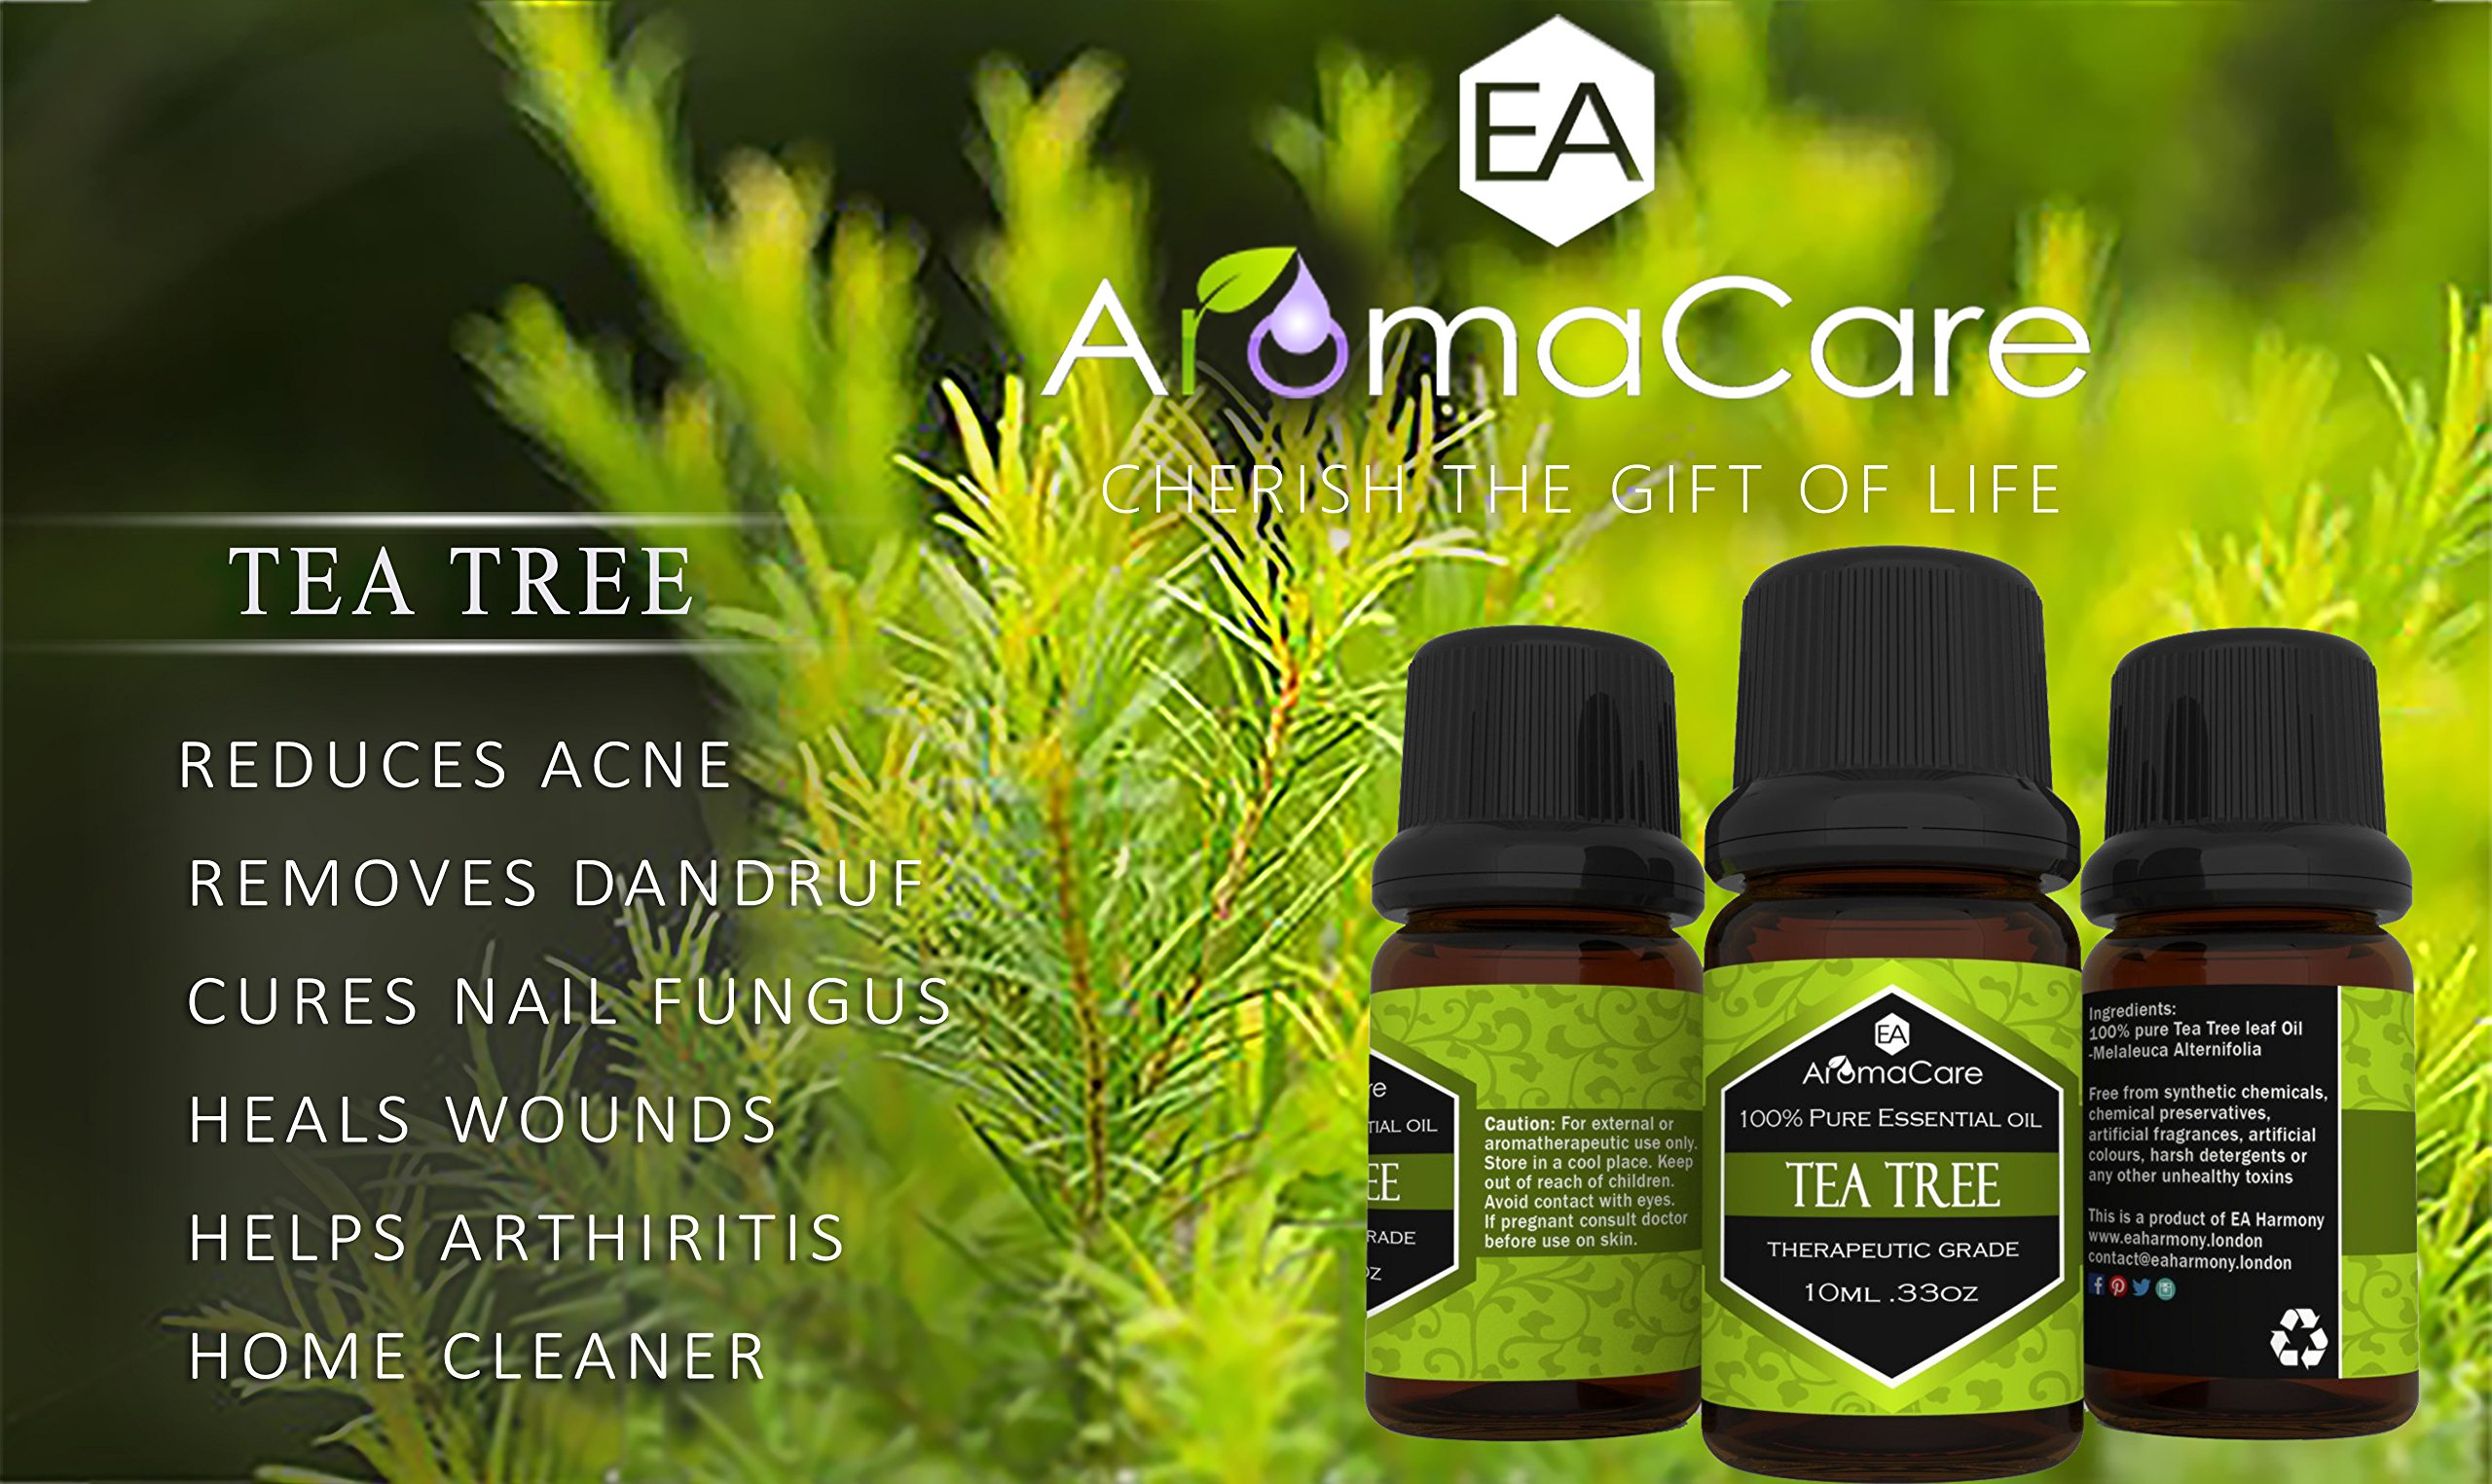 Aromatherapy Essential Oils Gift Set in a EXCLUSIVE WHITE BOX (Lavender, Peppermint, Lemongrass, TeaTree, Eucalyptus, Bergamot) FREE Essential Oil Pendant and ebook by EA AromaCare (Image #6)